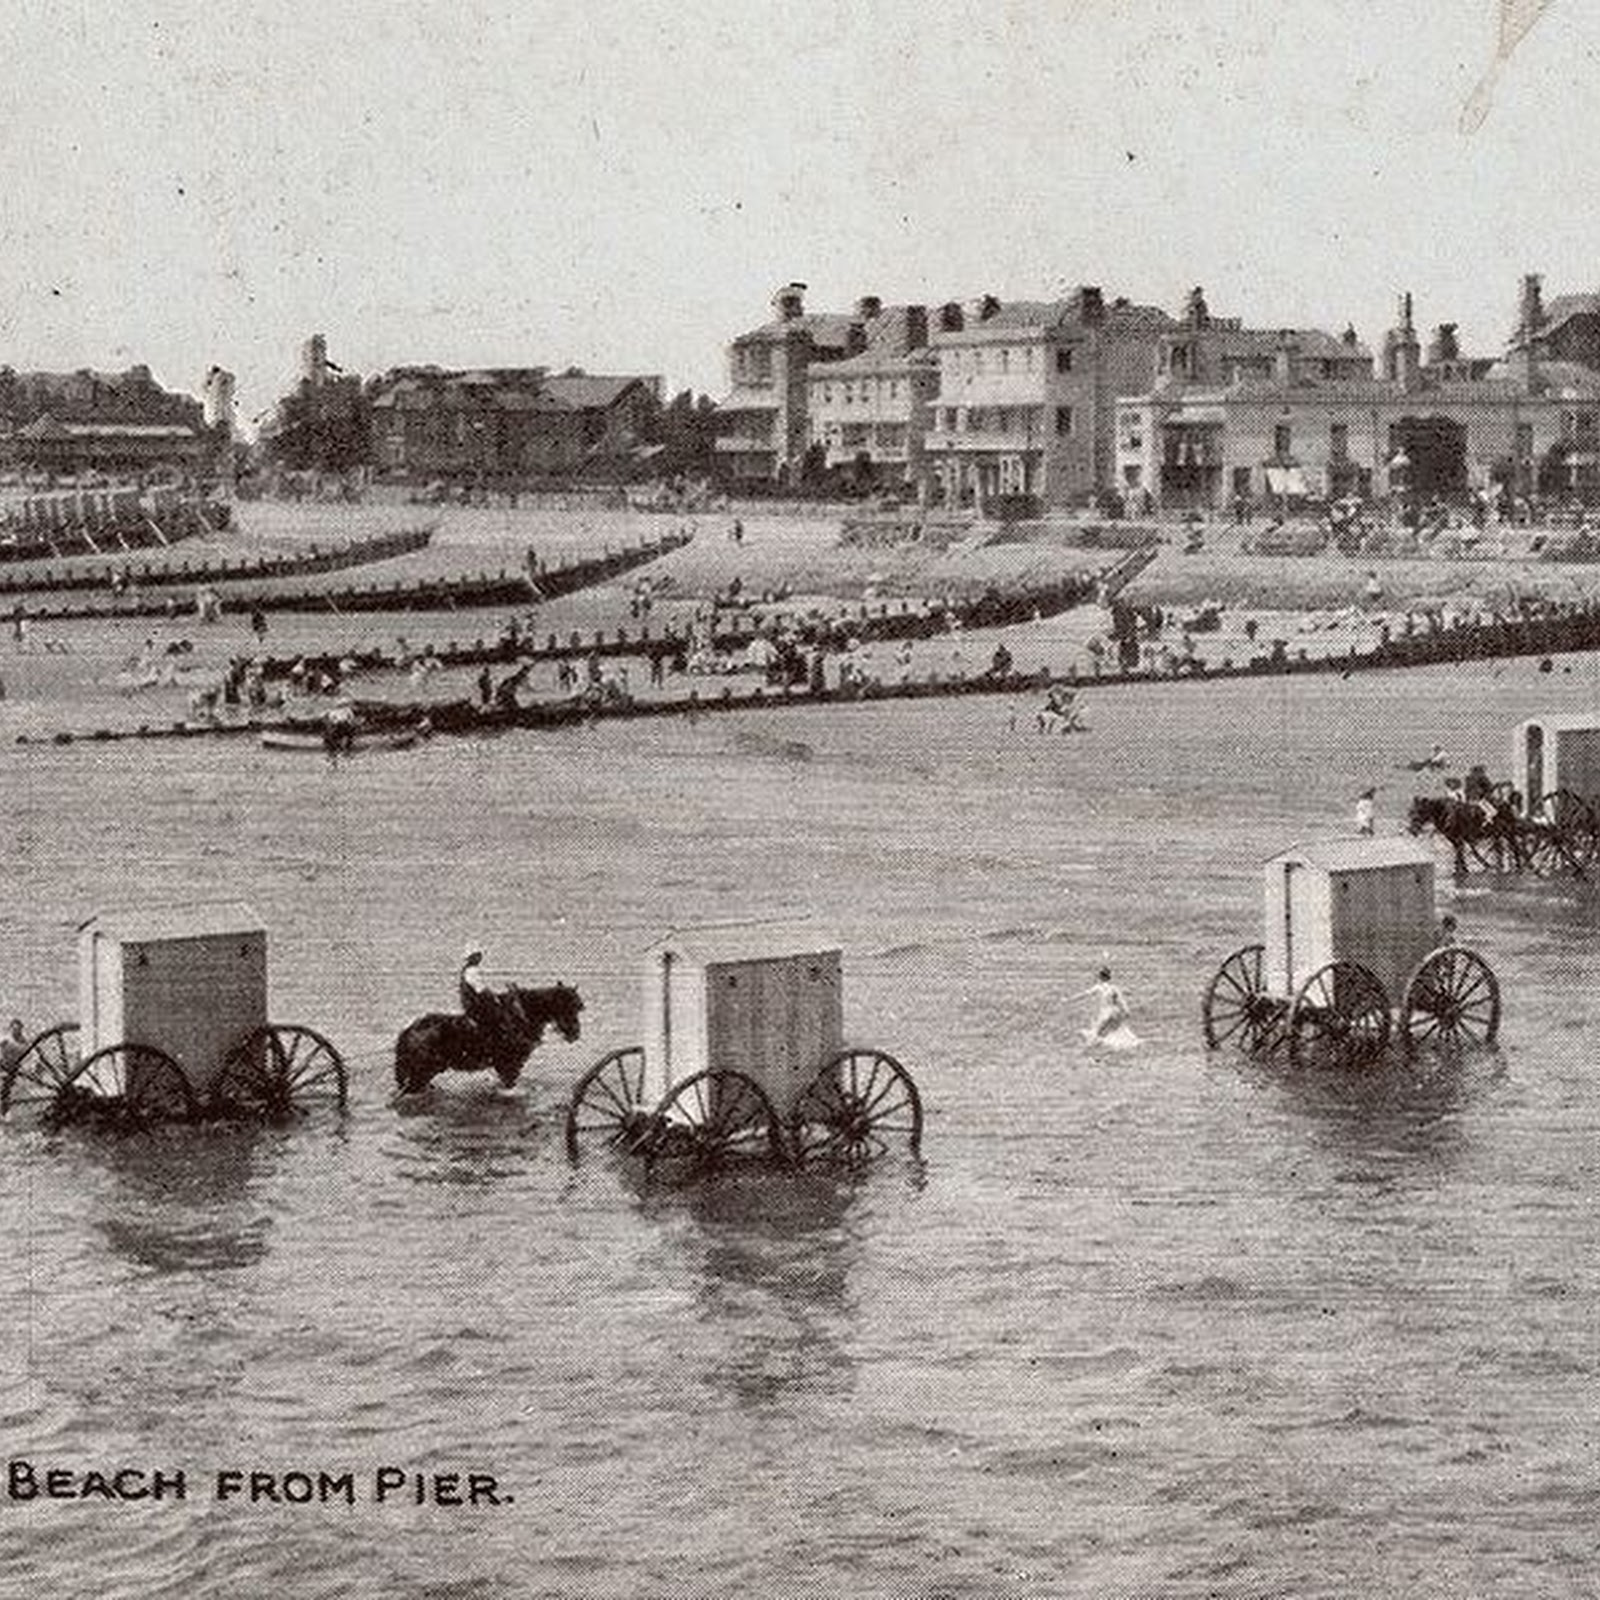 Bathing Machines of The 19th Century